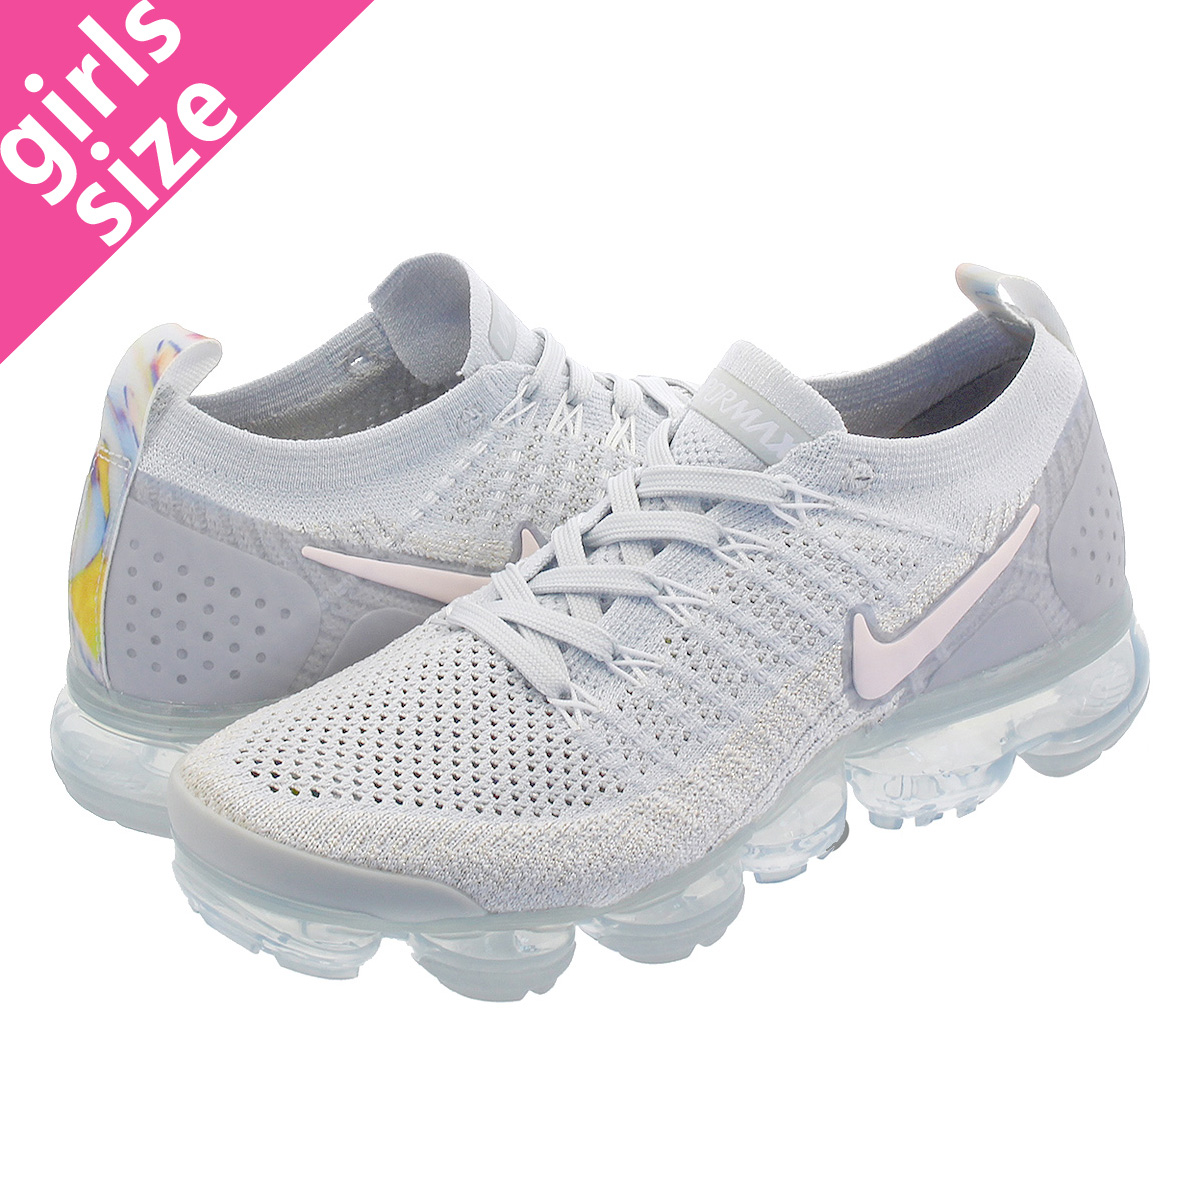 timeless design 562de a79ec NIKE WMNS AIR VAPORMAX FLYKNIT 2 Nike women vapor max fried food knit PURE  PLATINUM/ARCTIC PINK/WHITE 942,843-011